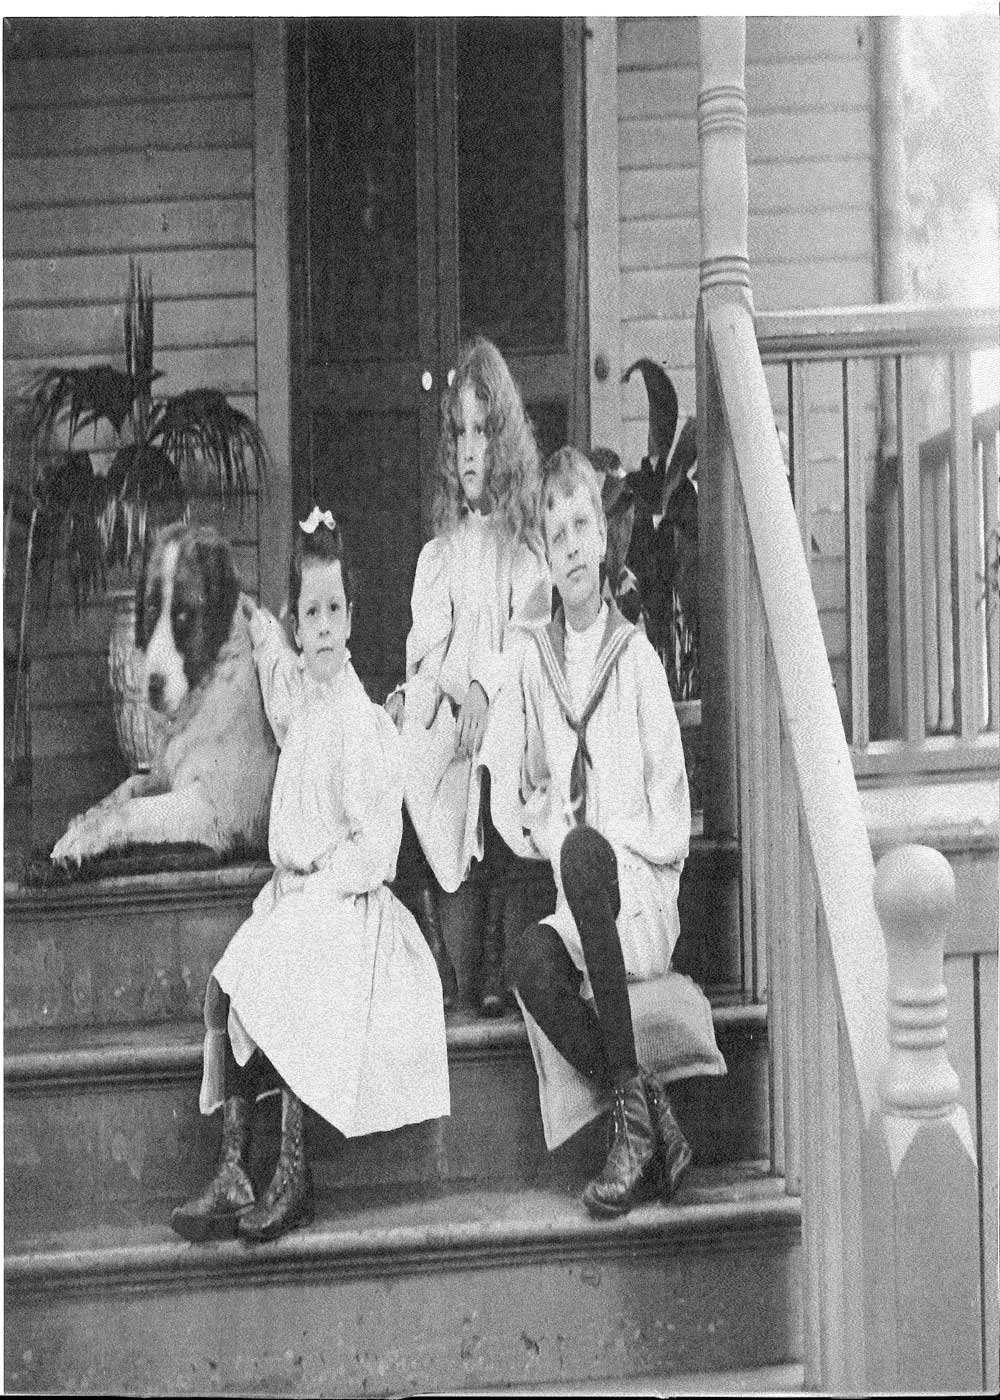 Charles and Marion Deering's children Barbara, Marion Jr., and Roger with family dog in Evanston, Illinois home ca. 1890s